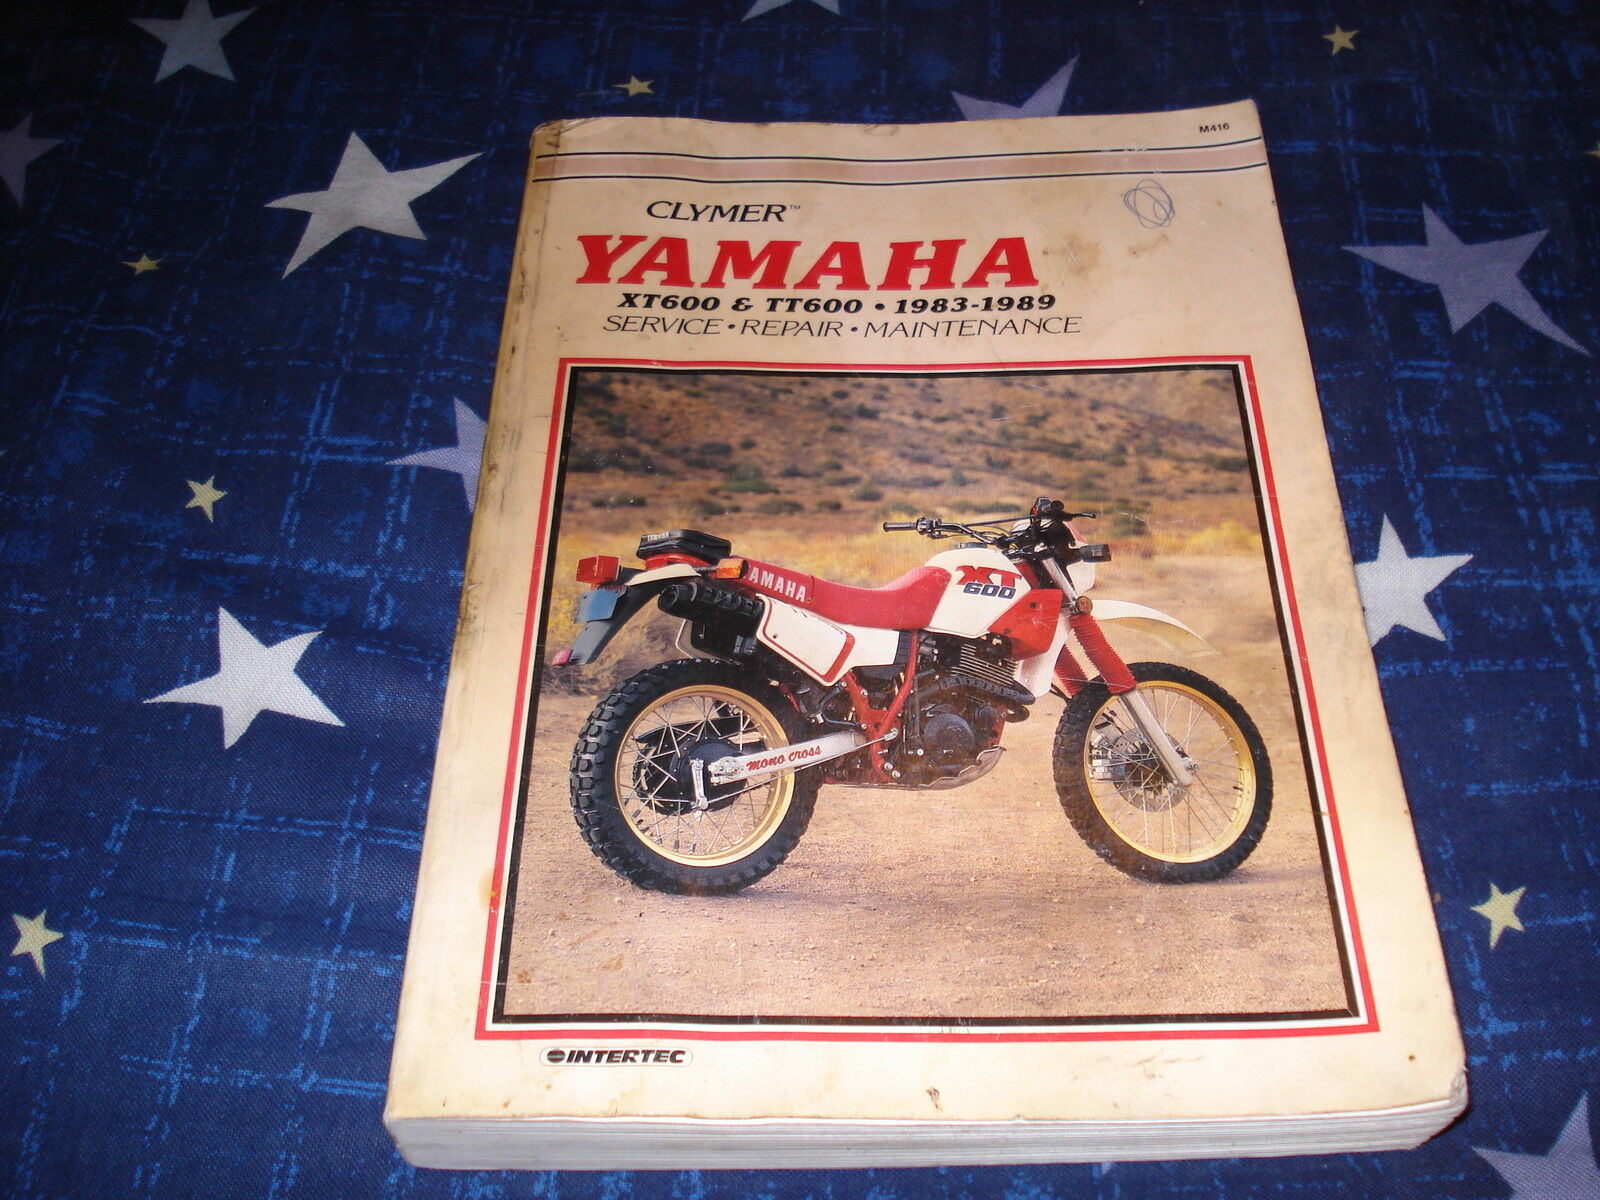 Clymer Yamaha 1983-1989 XT600 and TT600 Service Repair Manual 1 of 1Only 1  available ...